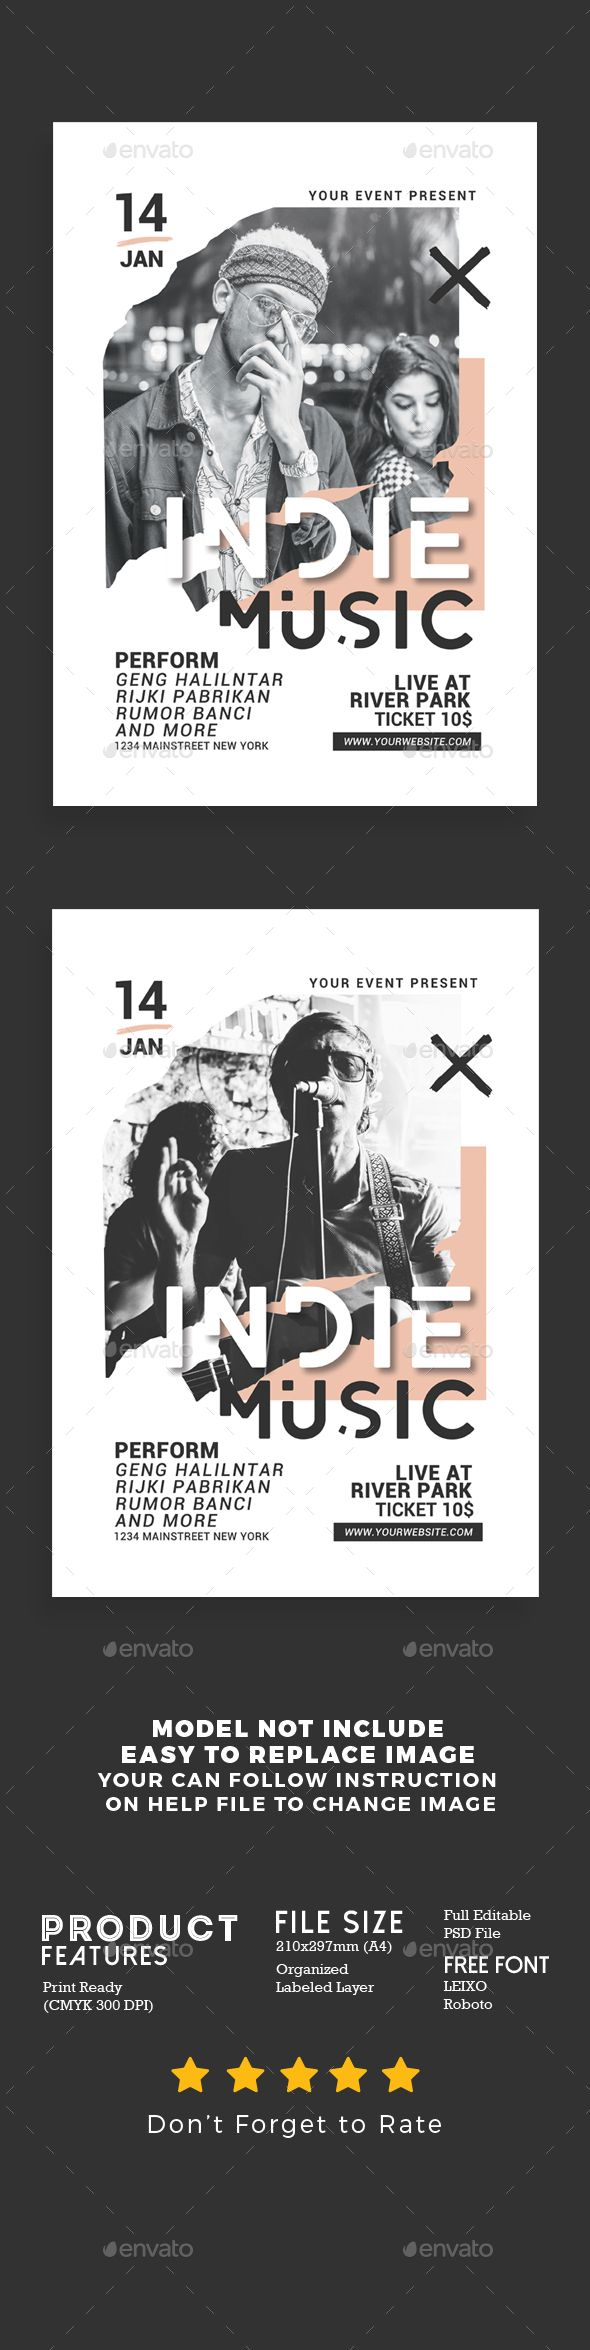 Indie #Music #Flyer - #Events Flyers